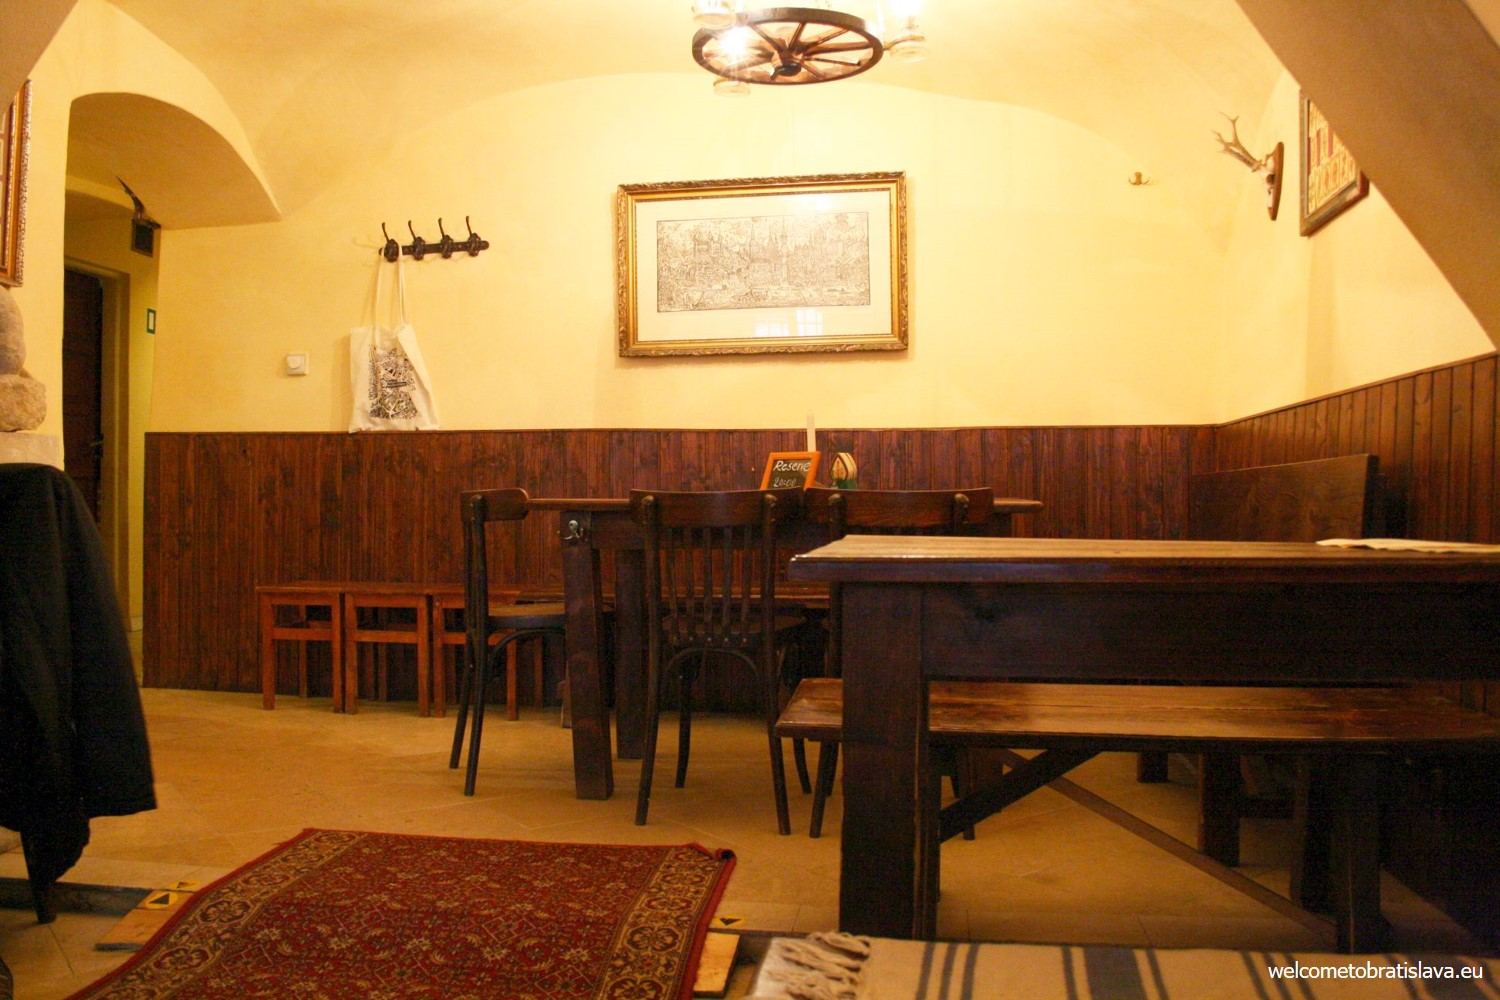 The whole place is quite small, accommodating only around 40 people.